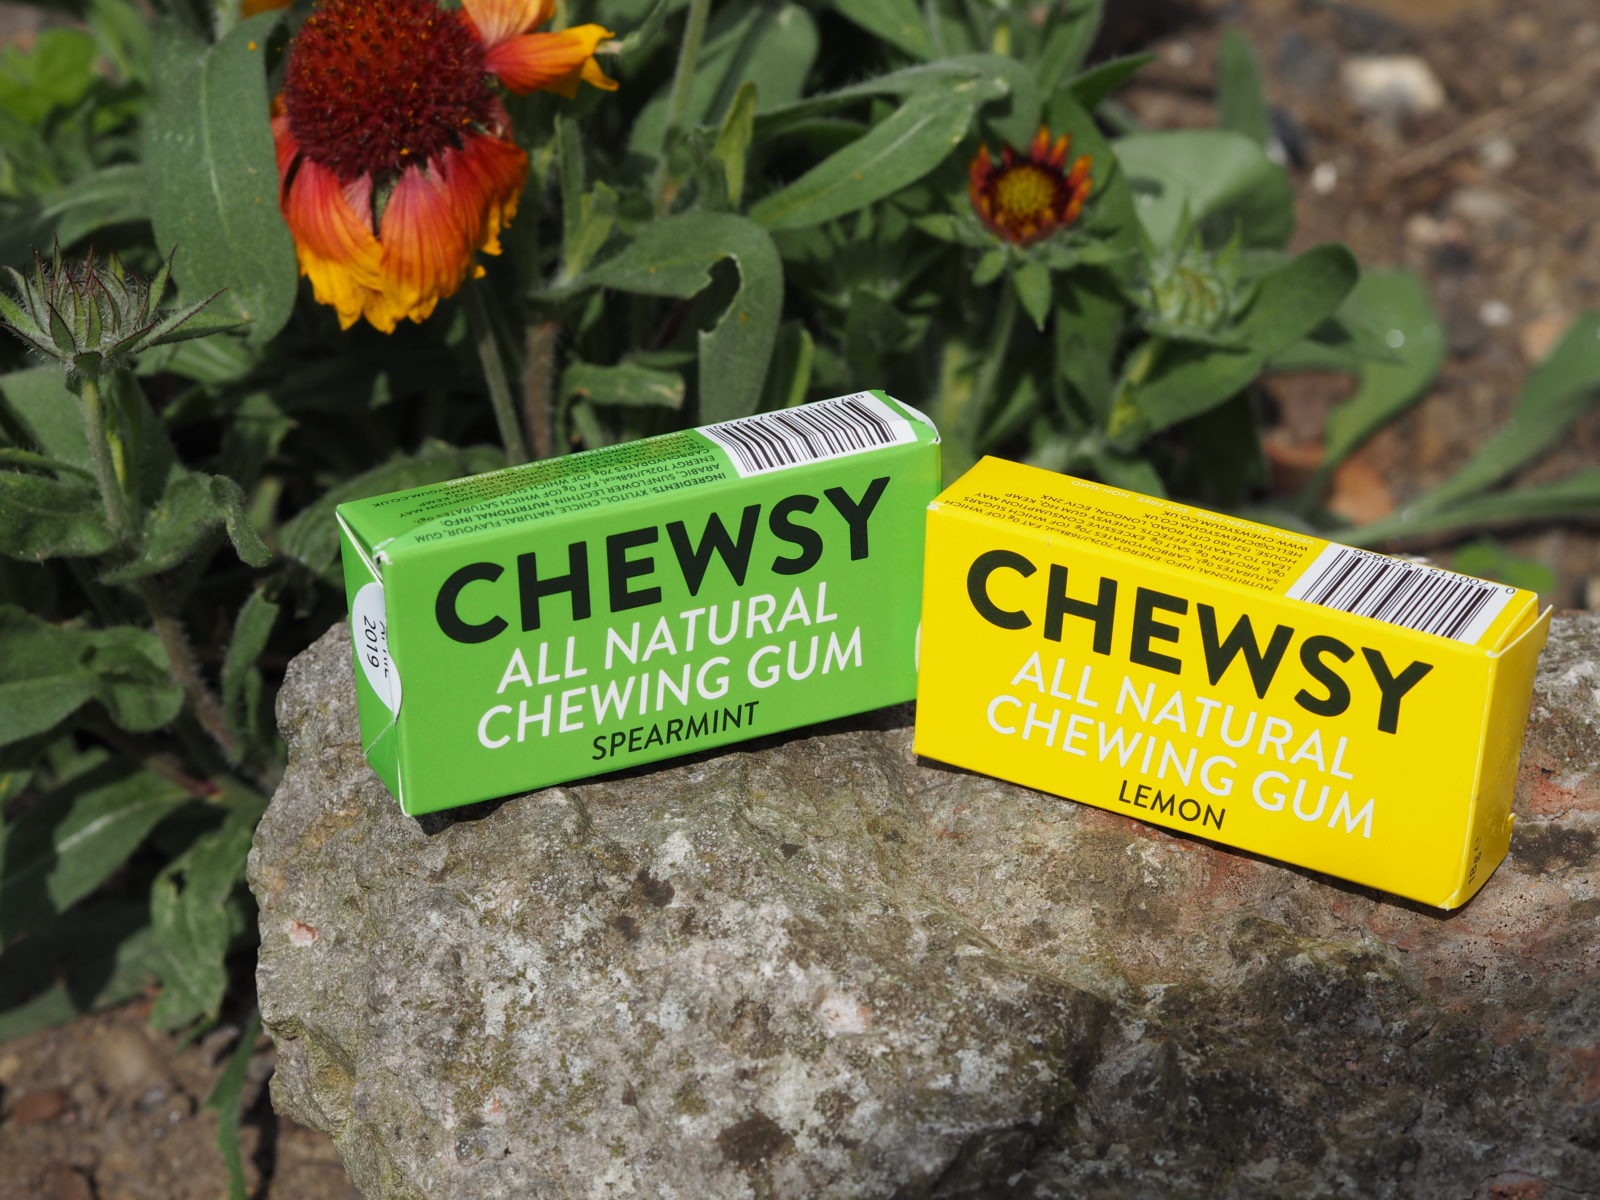 chewsy spearmint and lemon chewing gum